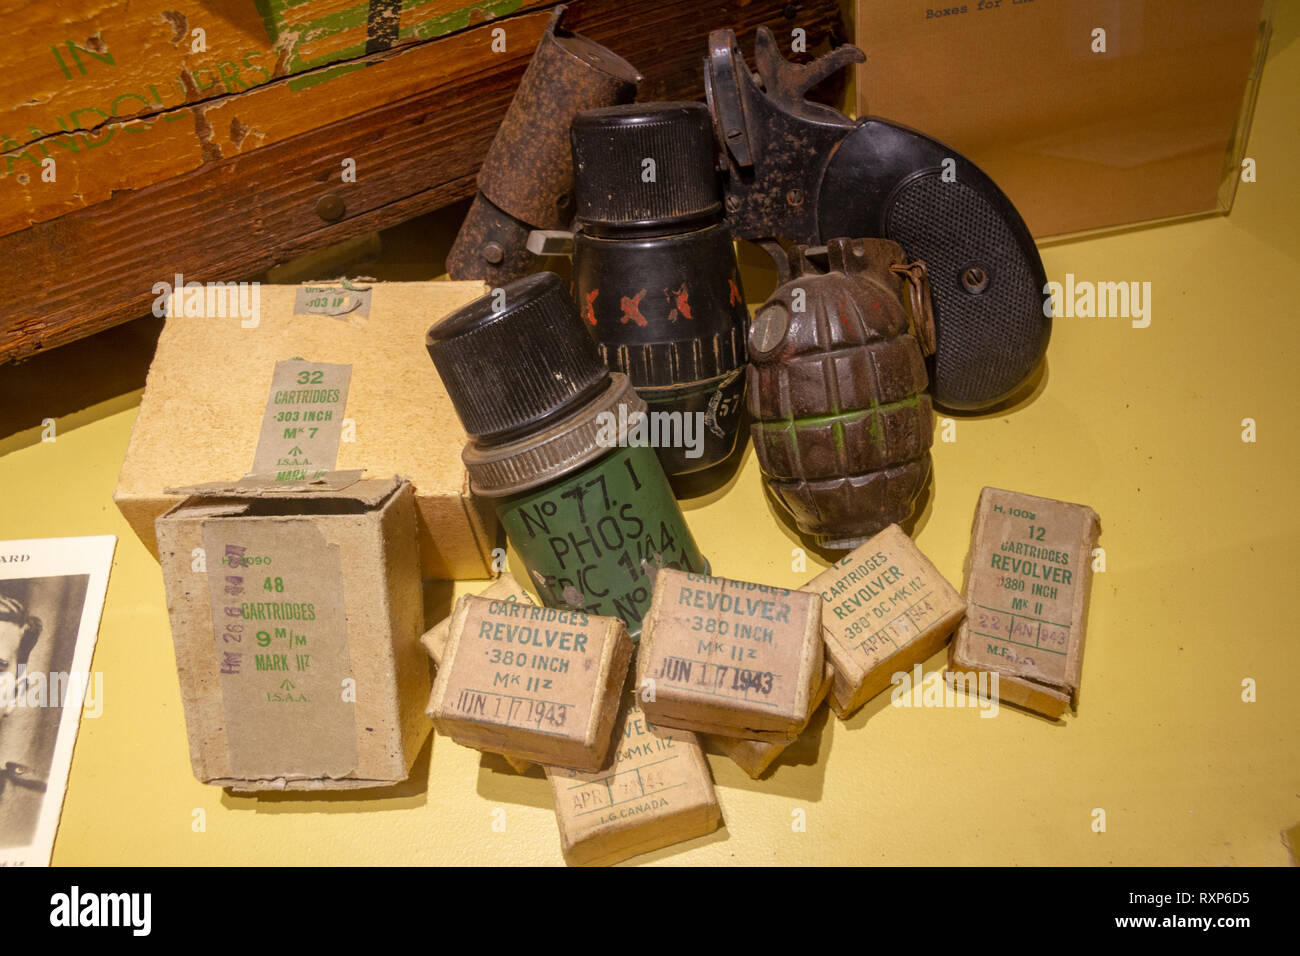 Allied ammunition, hand grenades and gun cartridges on display at the German Battery at Merville, Normandy, France. - Stock Image